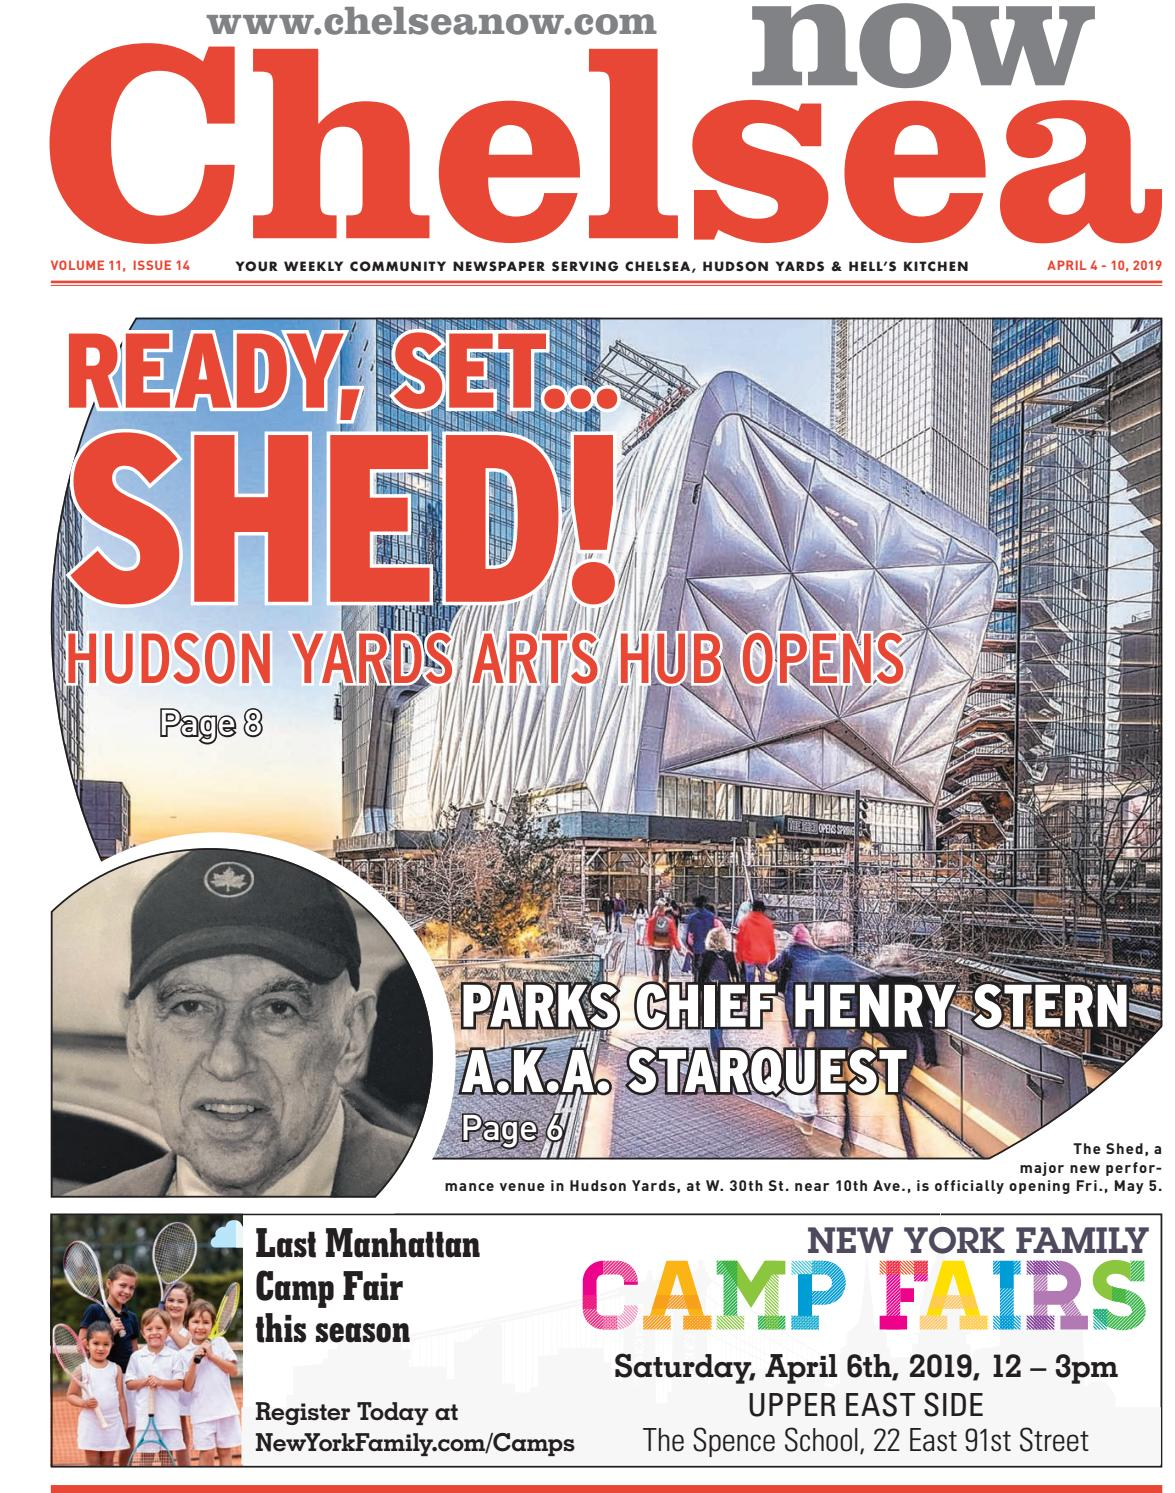 Chelsea Now - April 4, 2019 by Schneps Media - issuu